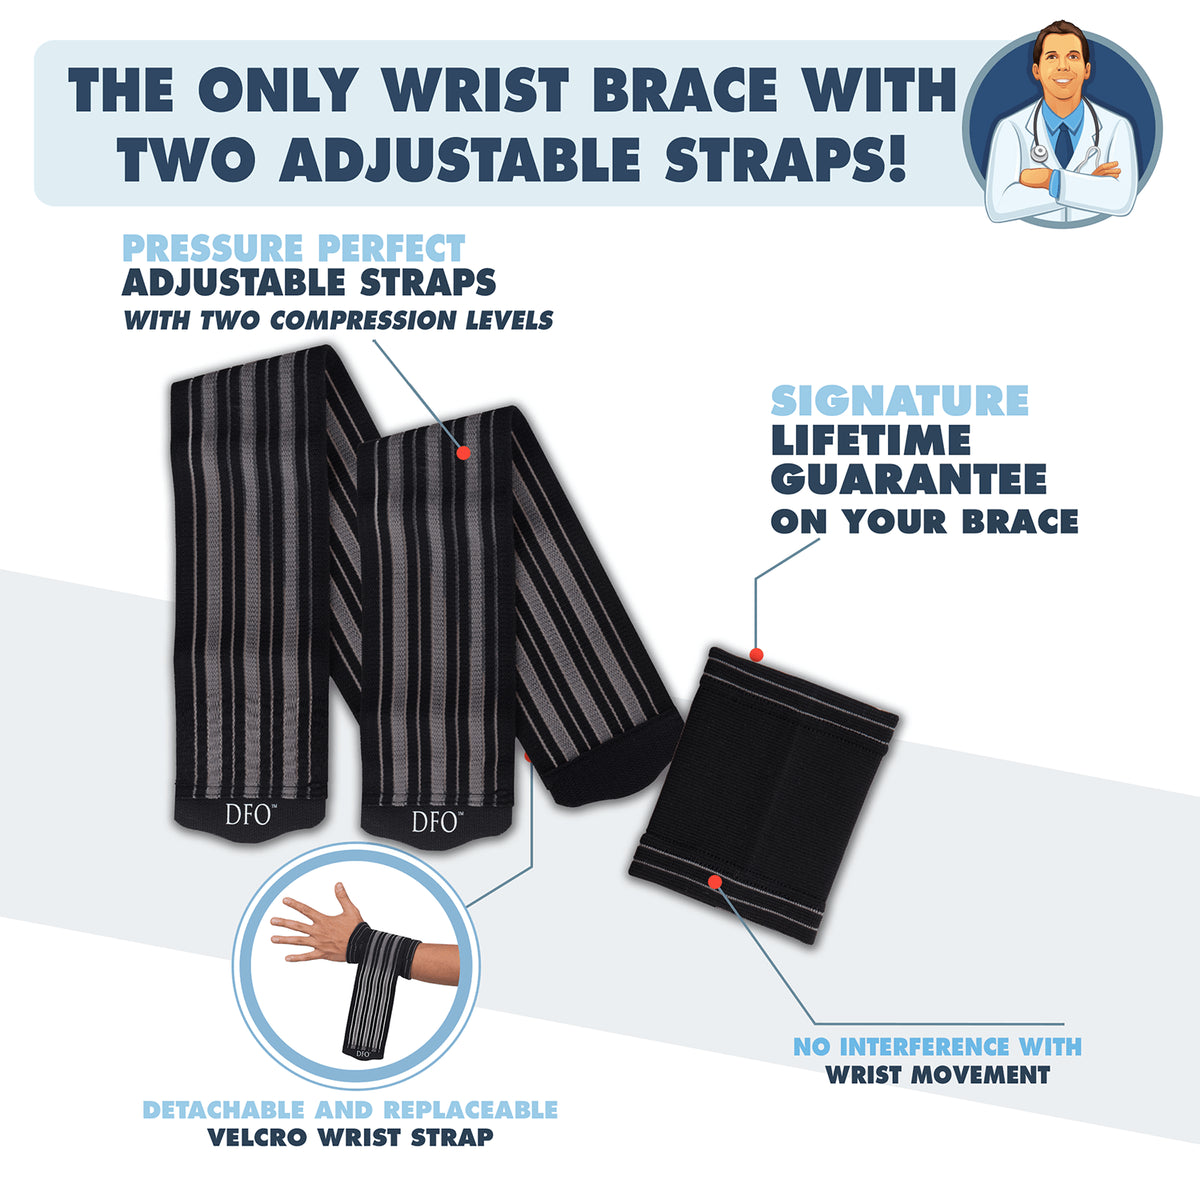 Pressure Perfect Wrist Wrap with 2 Fully Adjustable & Modular Wrist Straps - All Purpose Wrist Brace - One Unit, Left and Right Hand Wrist Pain Dr. Frederick's Original